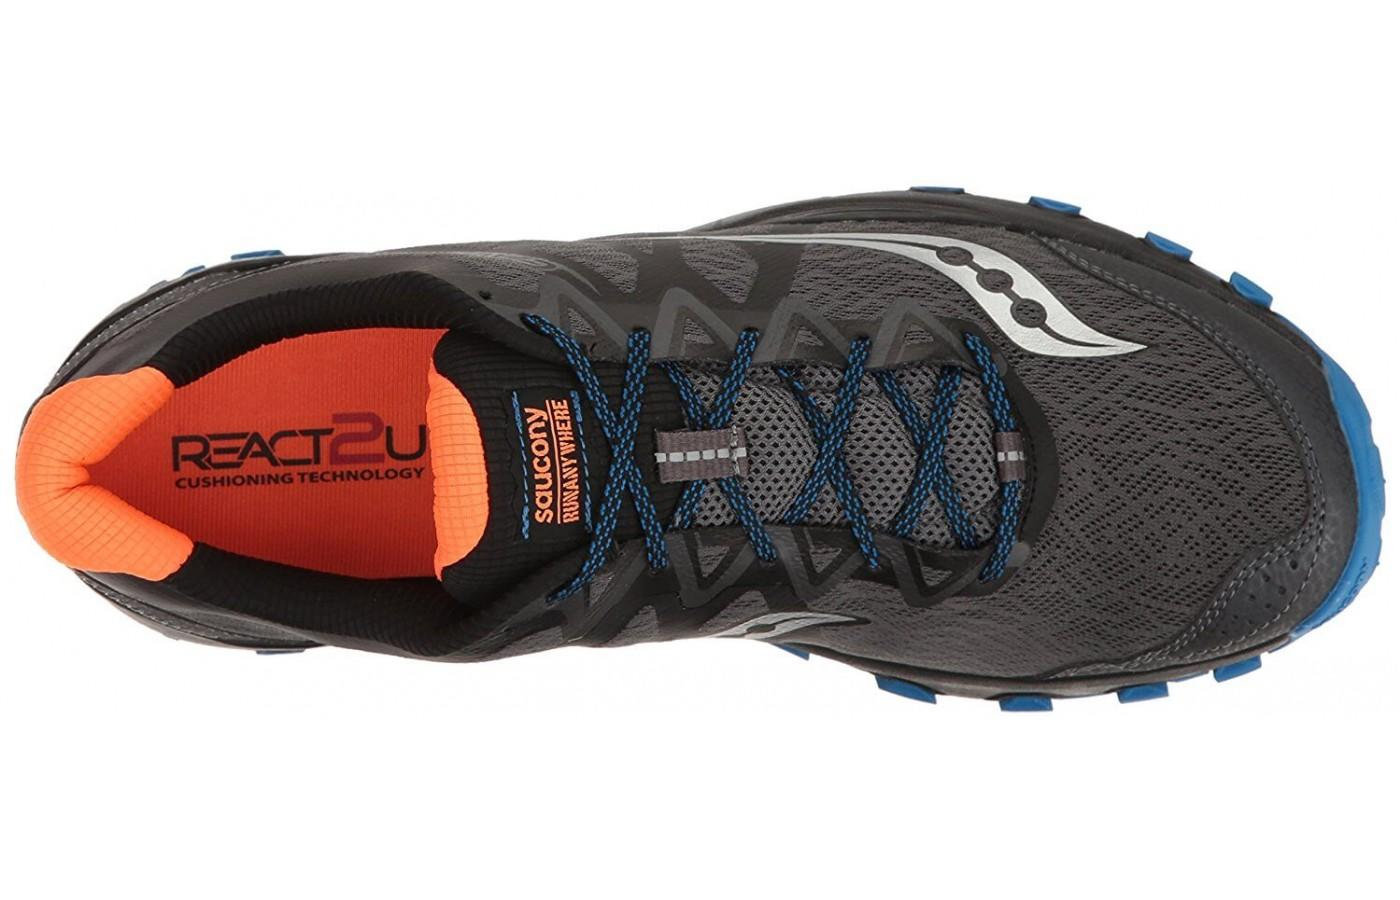 The upper provides a breathable, comfortable ride.